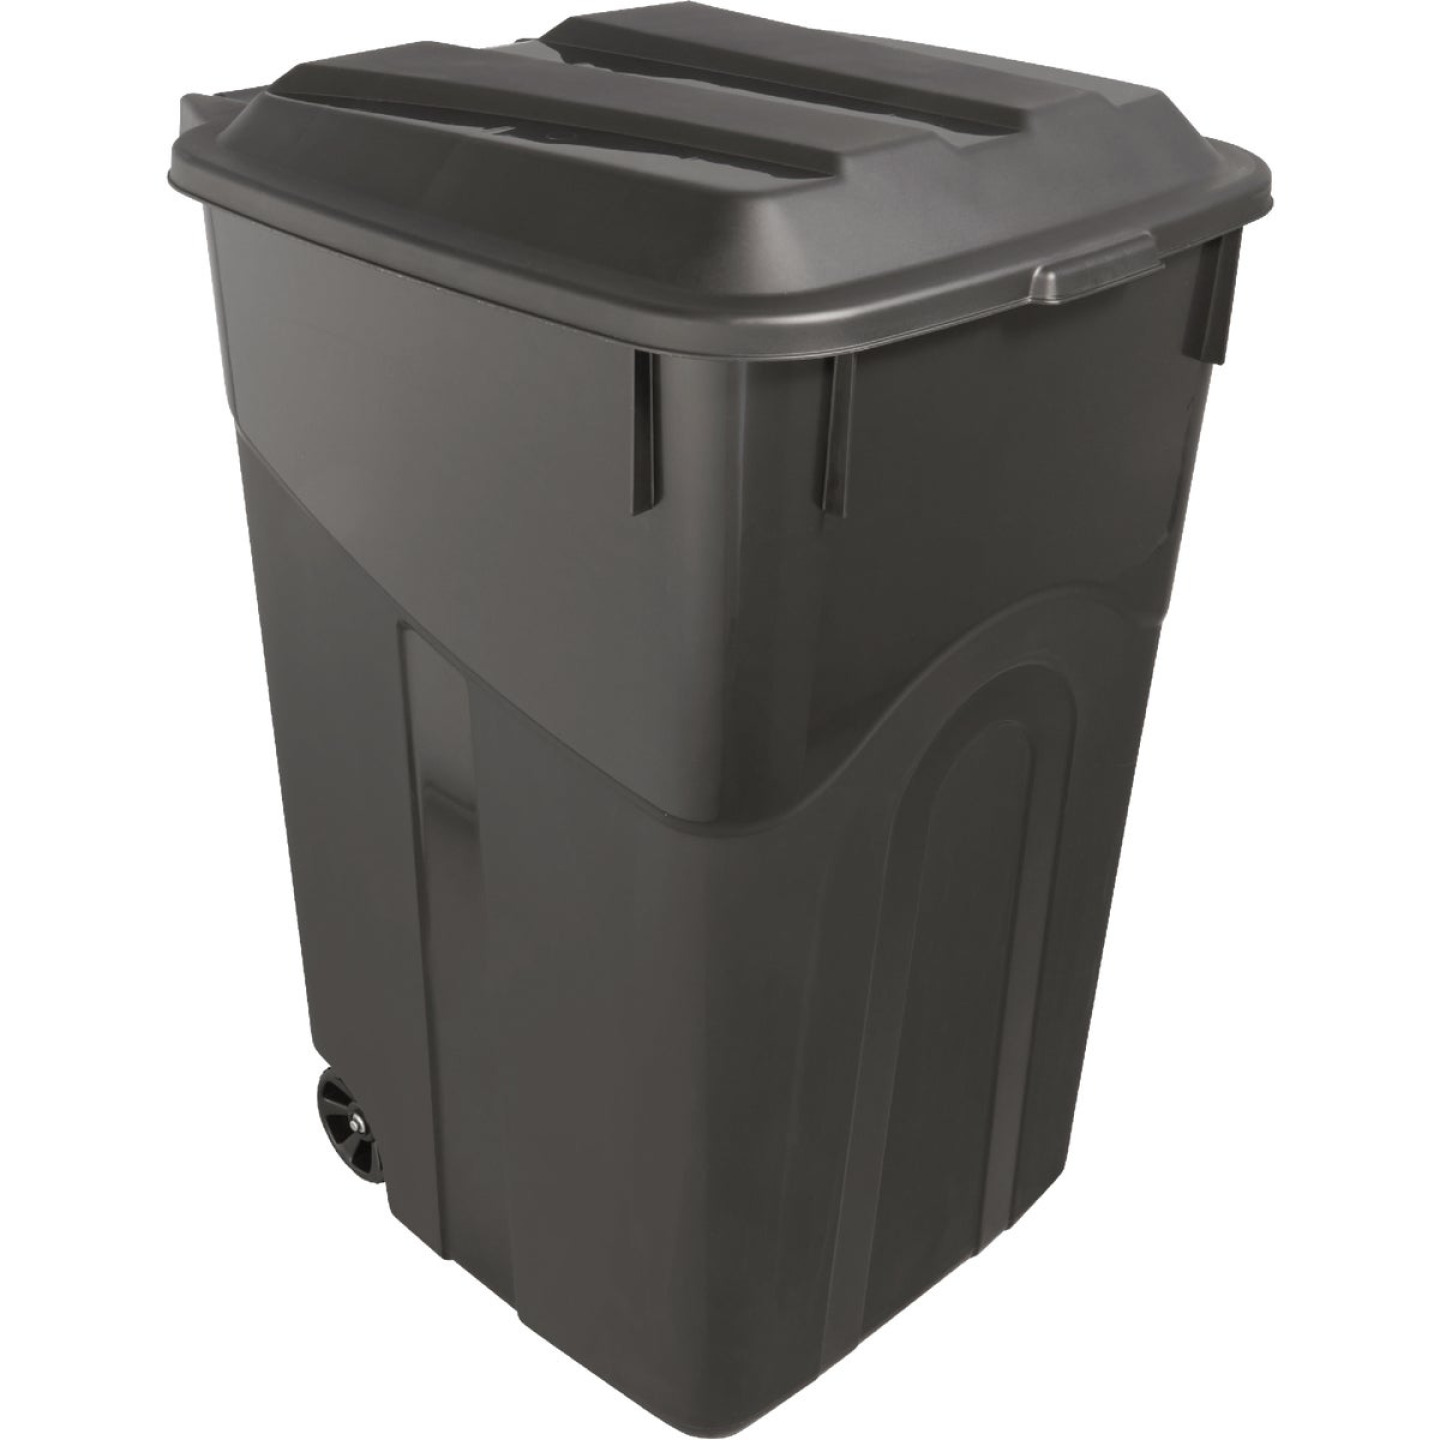 United Solutions Rough and Rugged 45 Gal. Wheeled Trash Can with Attached Lid Image 1